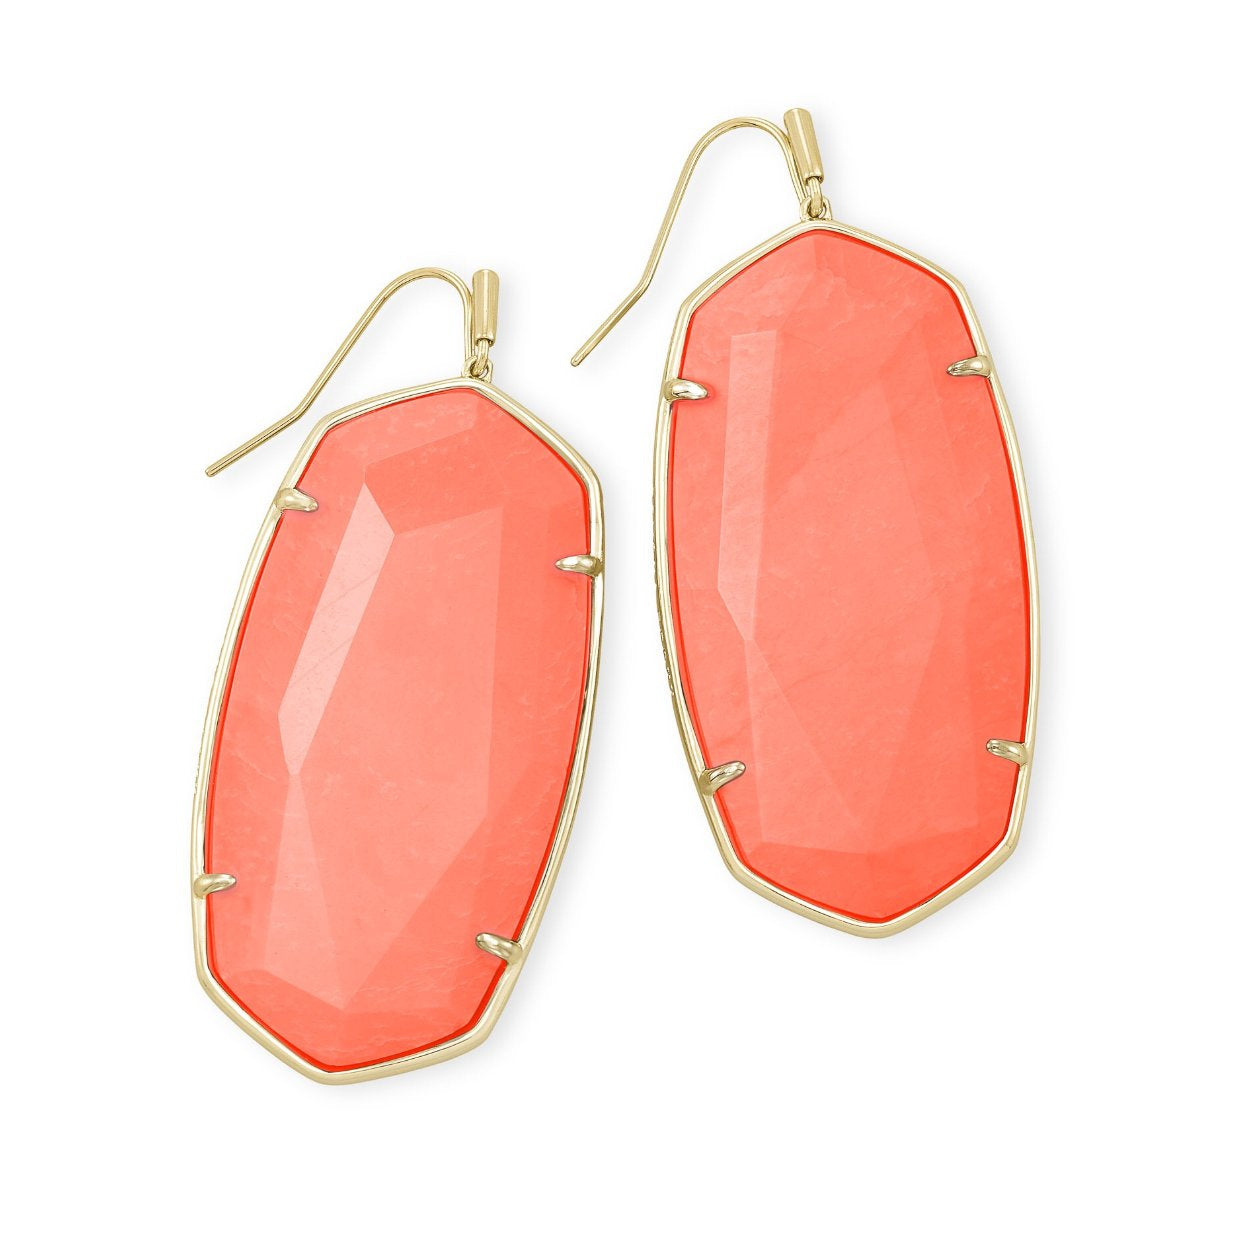 Faceted Danielle Earrings in Gold Bright Coral